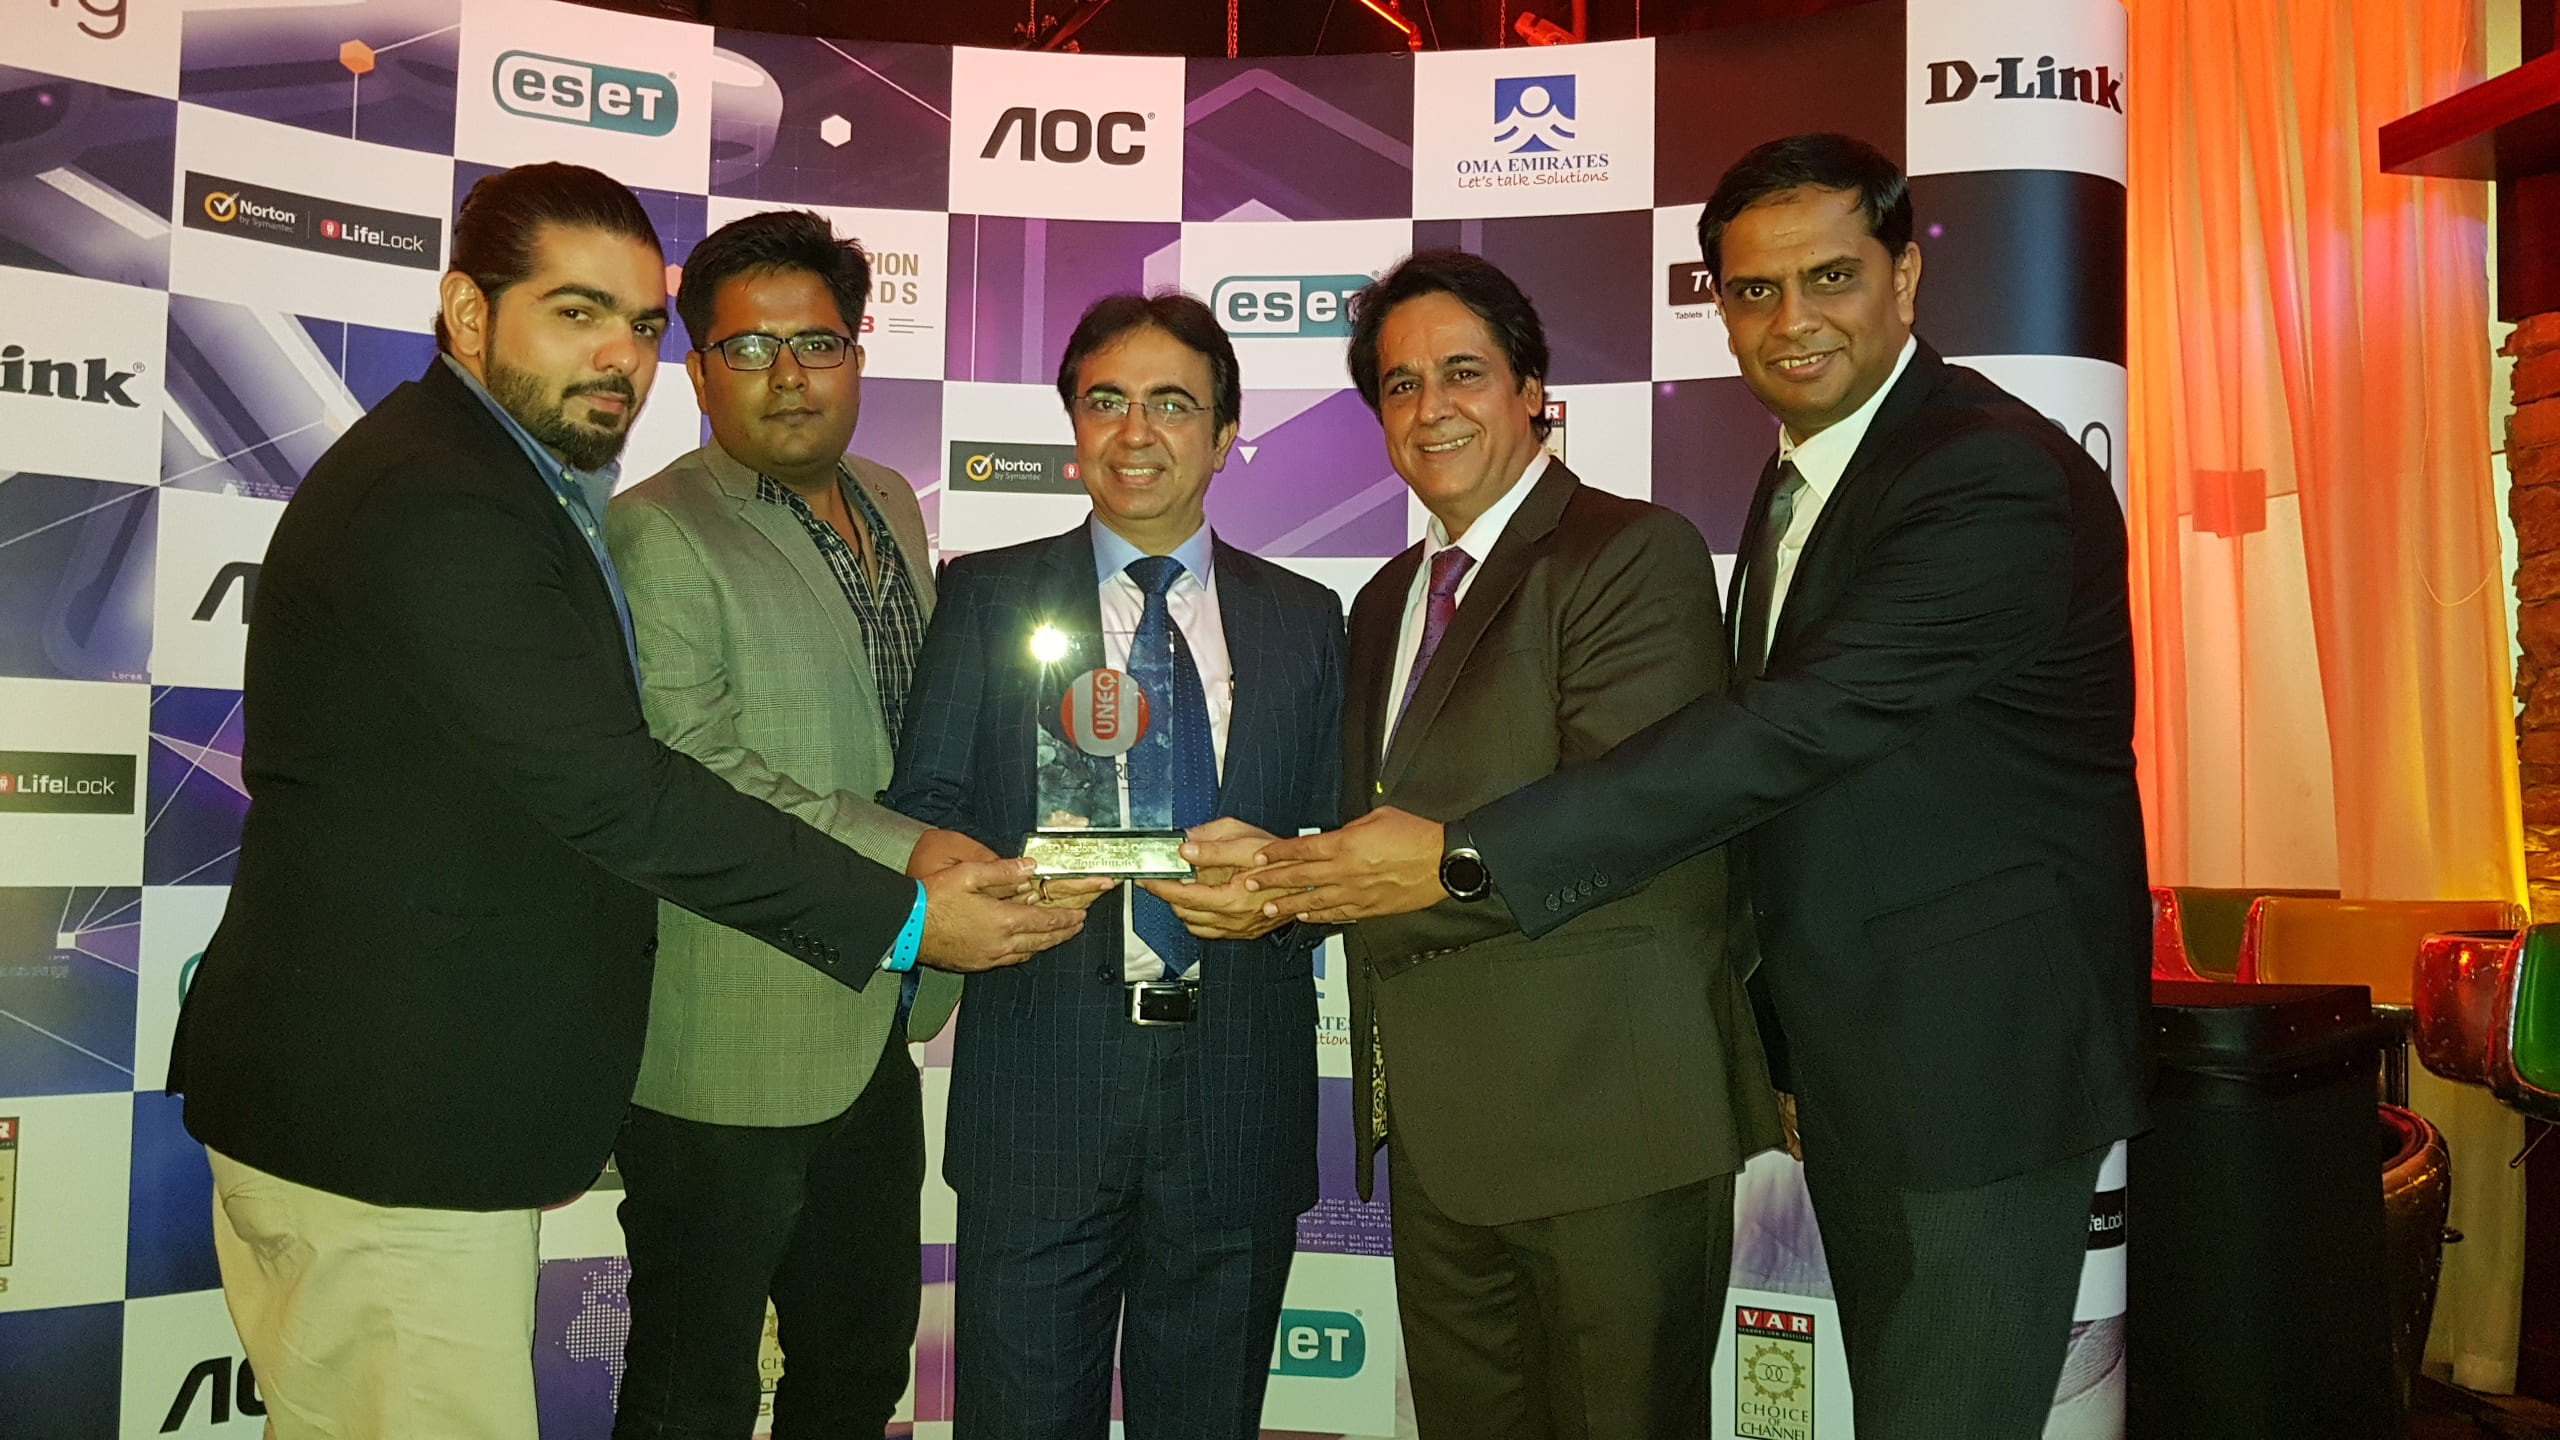 TOUCHMATE won Award for UNEQ Regional Brand of the Year at VAR Choice of Channel 2018